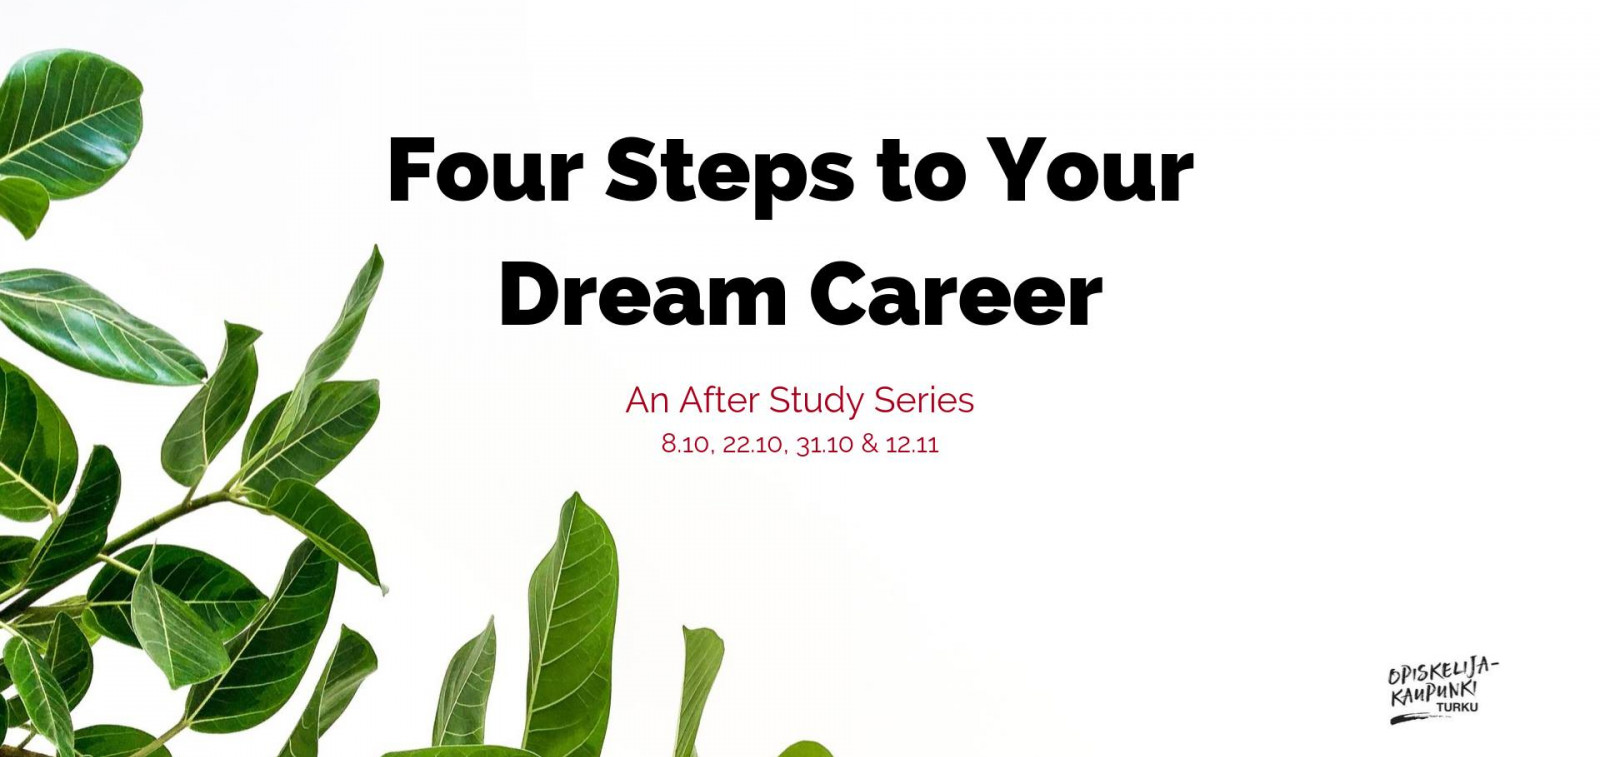 Four steps to your dream career -discussion series are coming to Turku for the first time